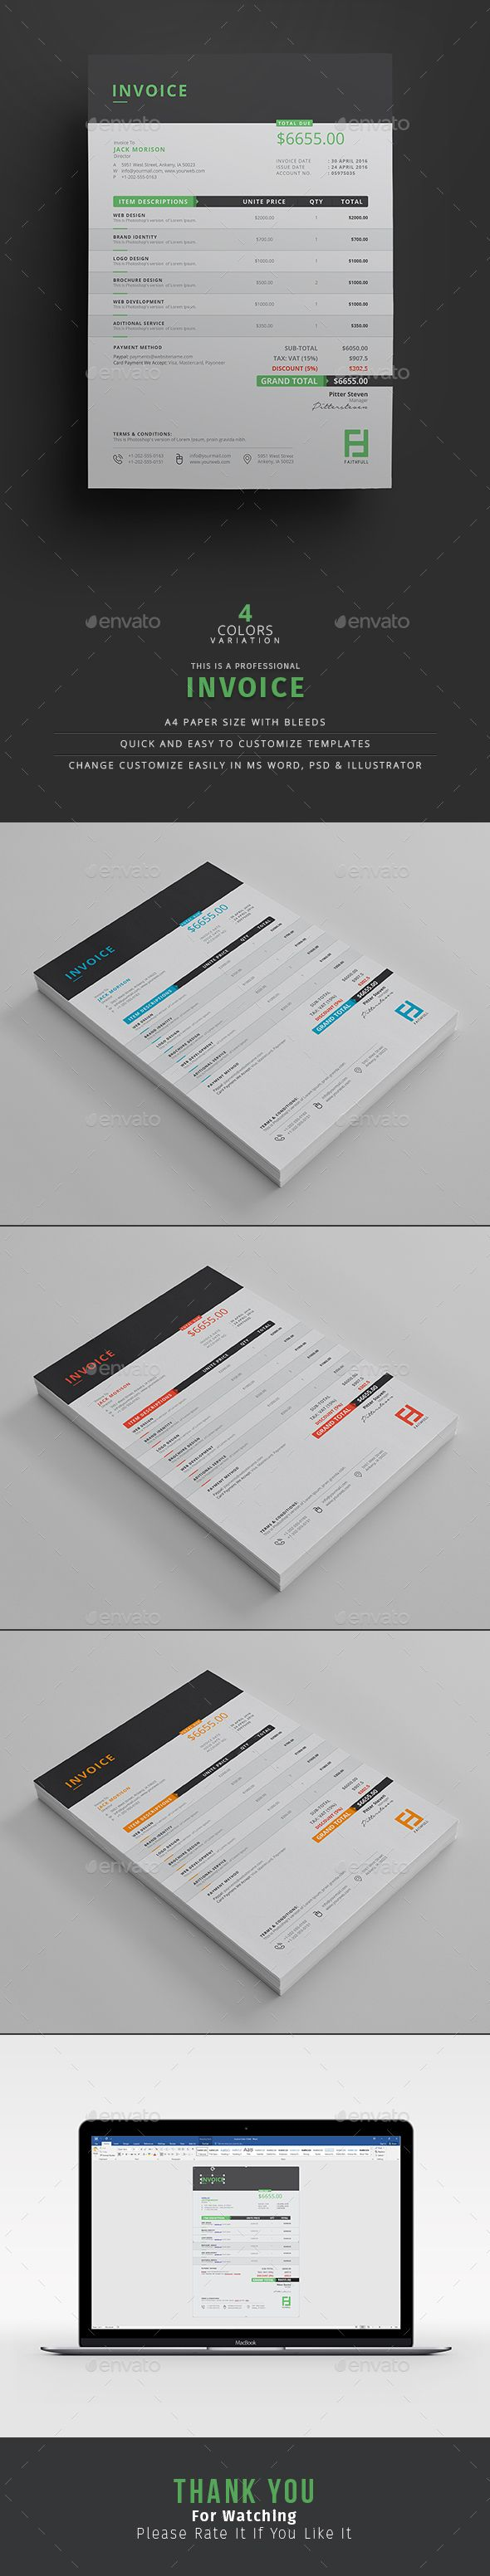 88 best Inspiration | Invoices images on Pinterest | Invoice ...